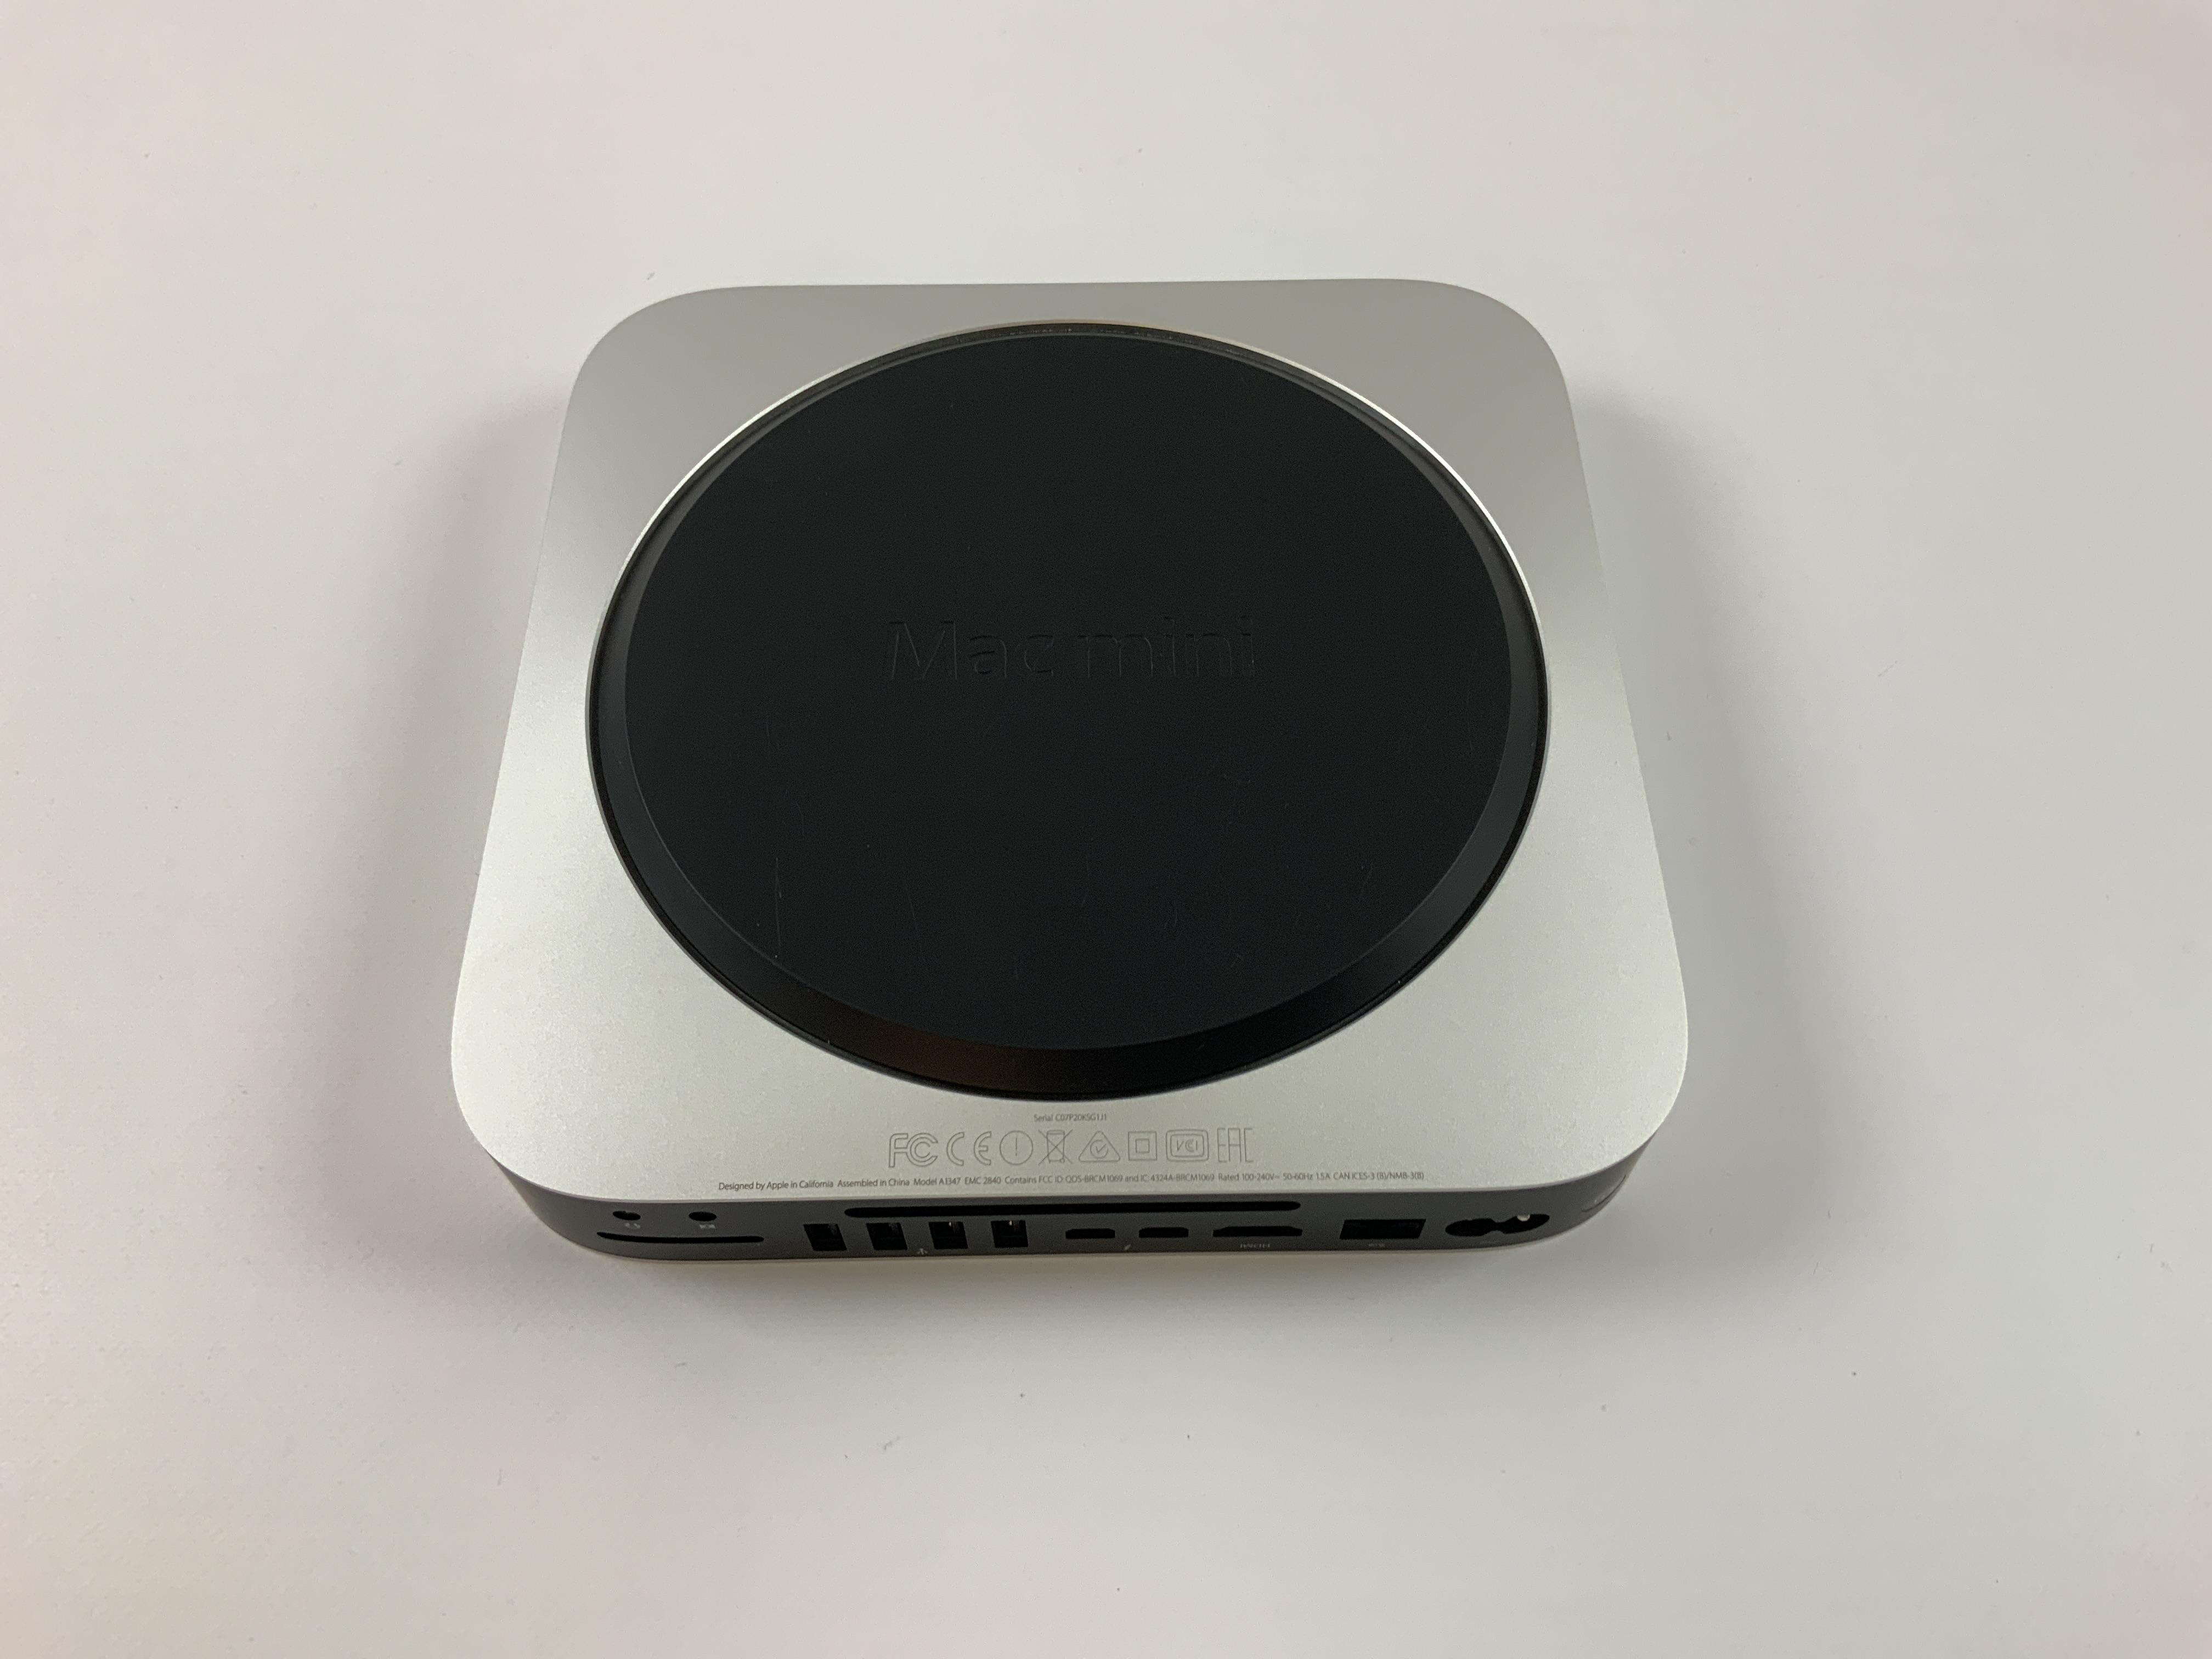 Mac Mini Late 2014 (Intel Core i5 2.6 GHz 16 GB RAM 1 TB HDD), Intel Core i5 2.6 GHz, 16 GB RAM, 1 TB HDD, image 2